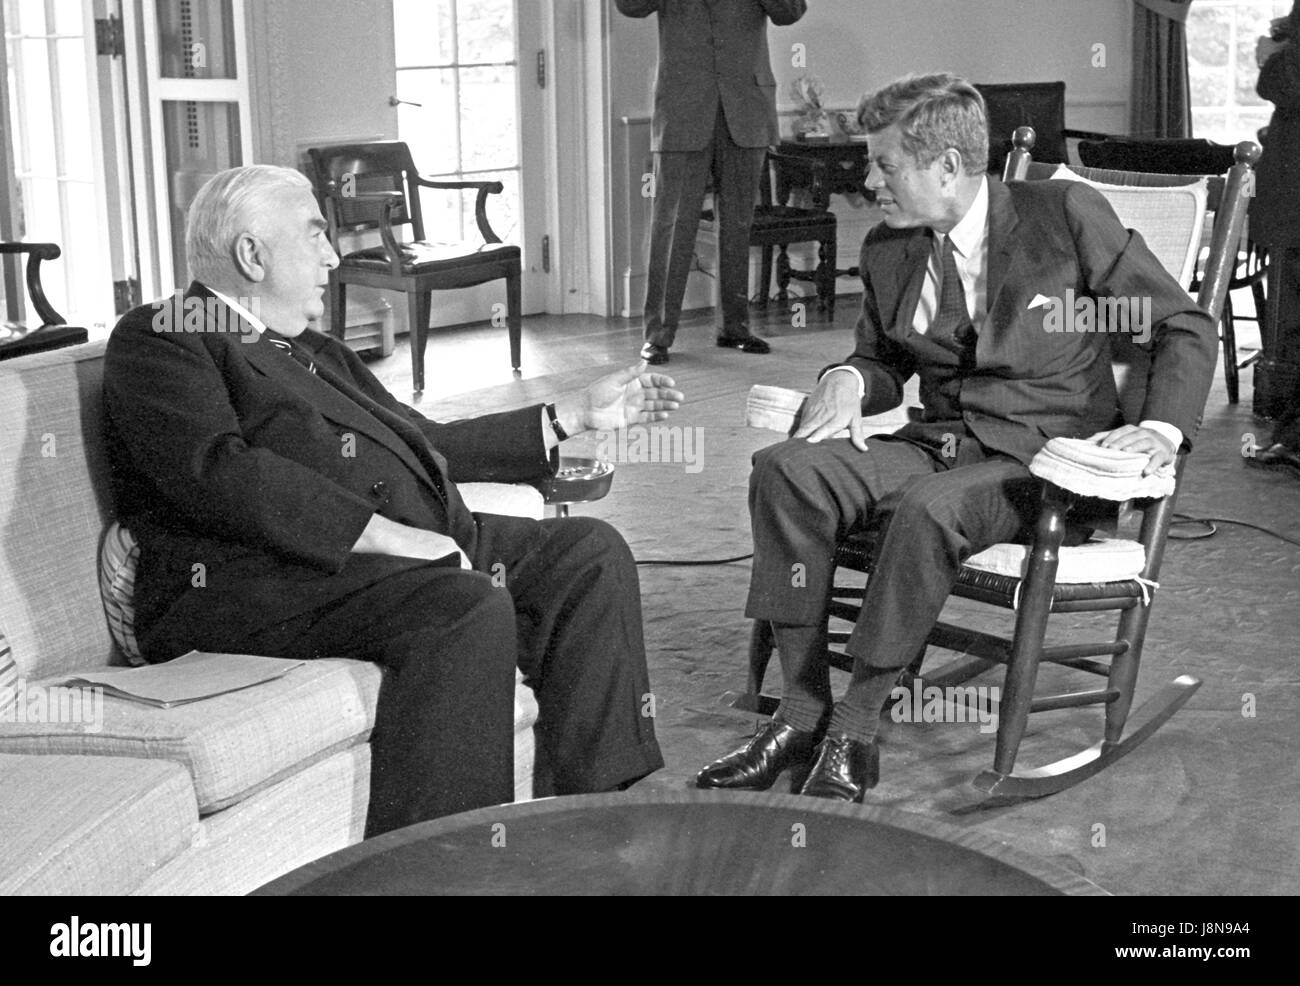 jfk in oval office. United States President John F. Kennedy (in Rocking Chair), Right, Meets With Prime Minister Of Australia Robert G. Menzies, Left, In The Oval Office Jfk L